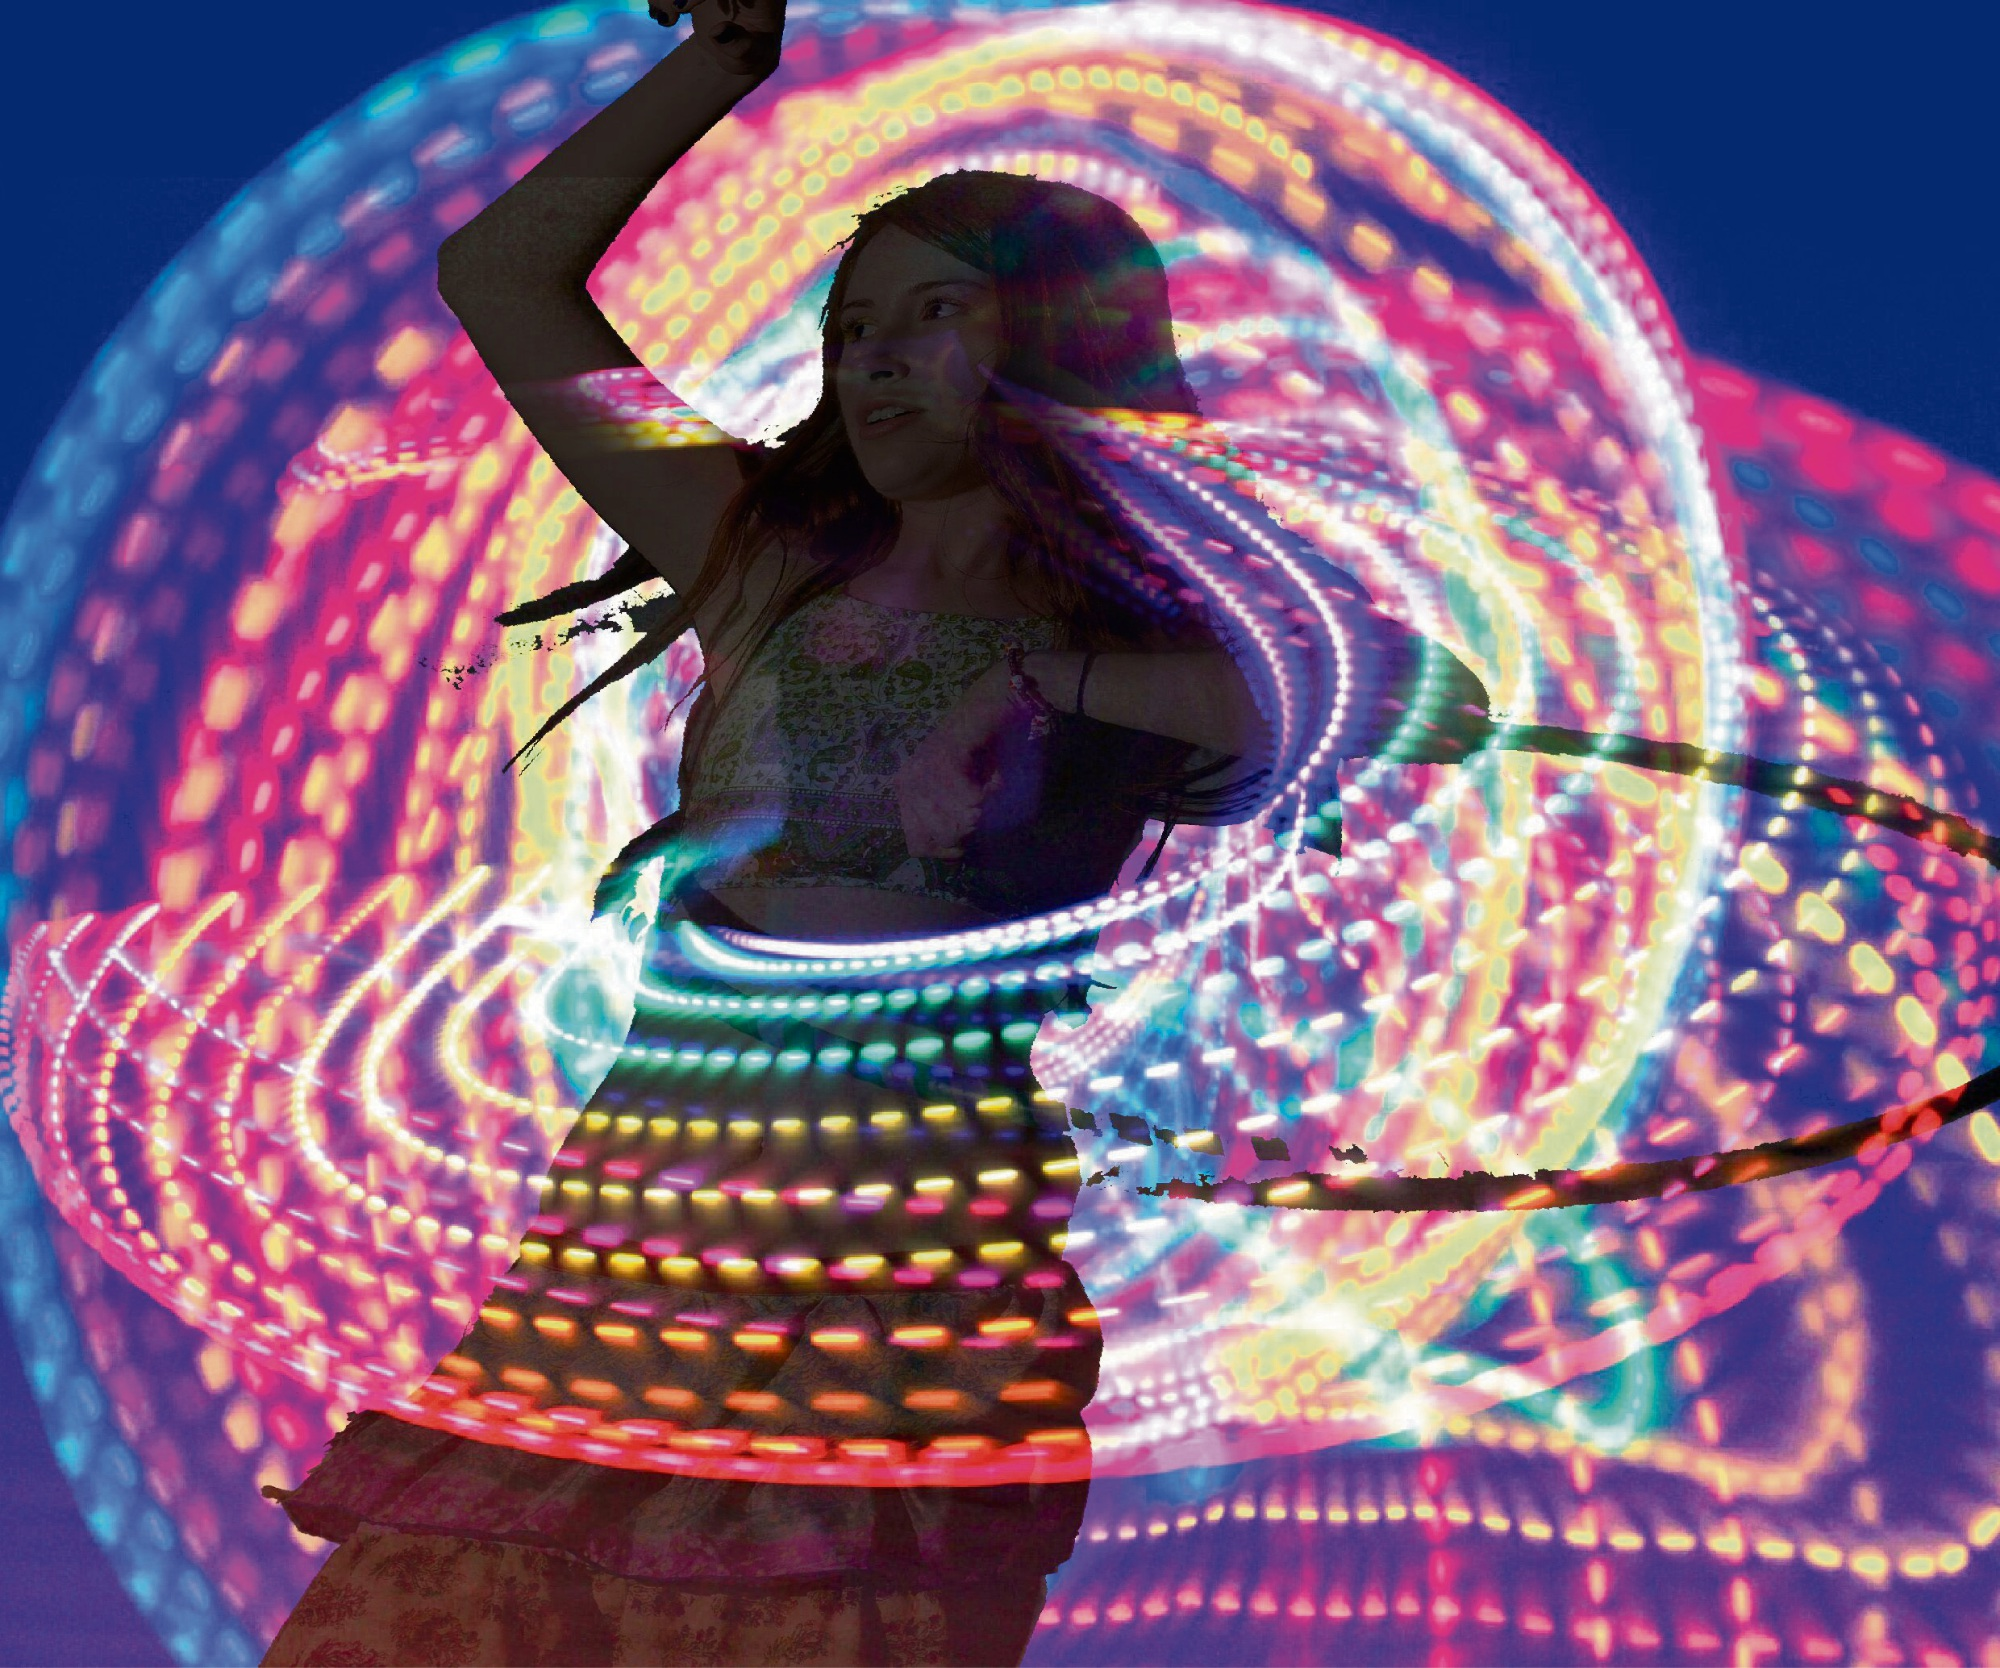 Kaleidoscope Festival set to light up Joondalup tomorrow